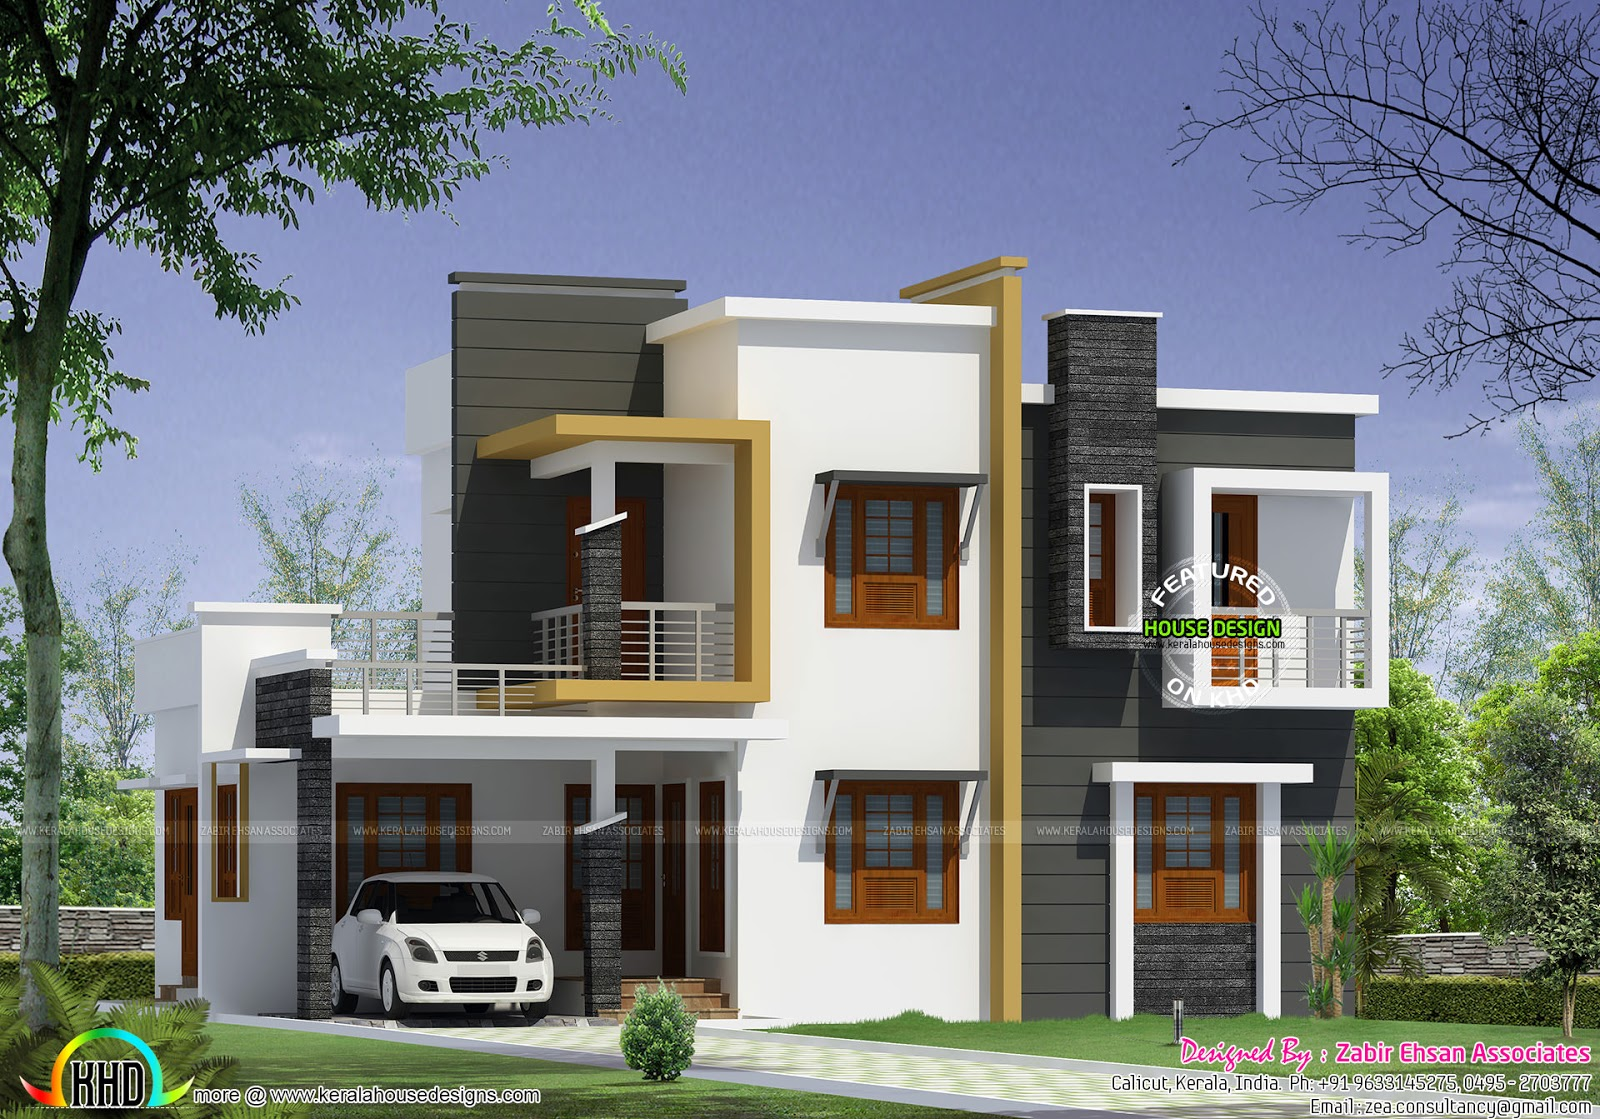 Box type modern house plan kerala home design and floor for House lans